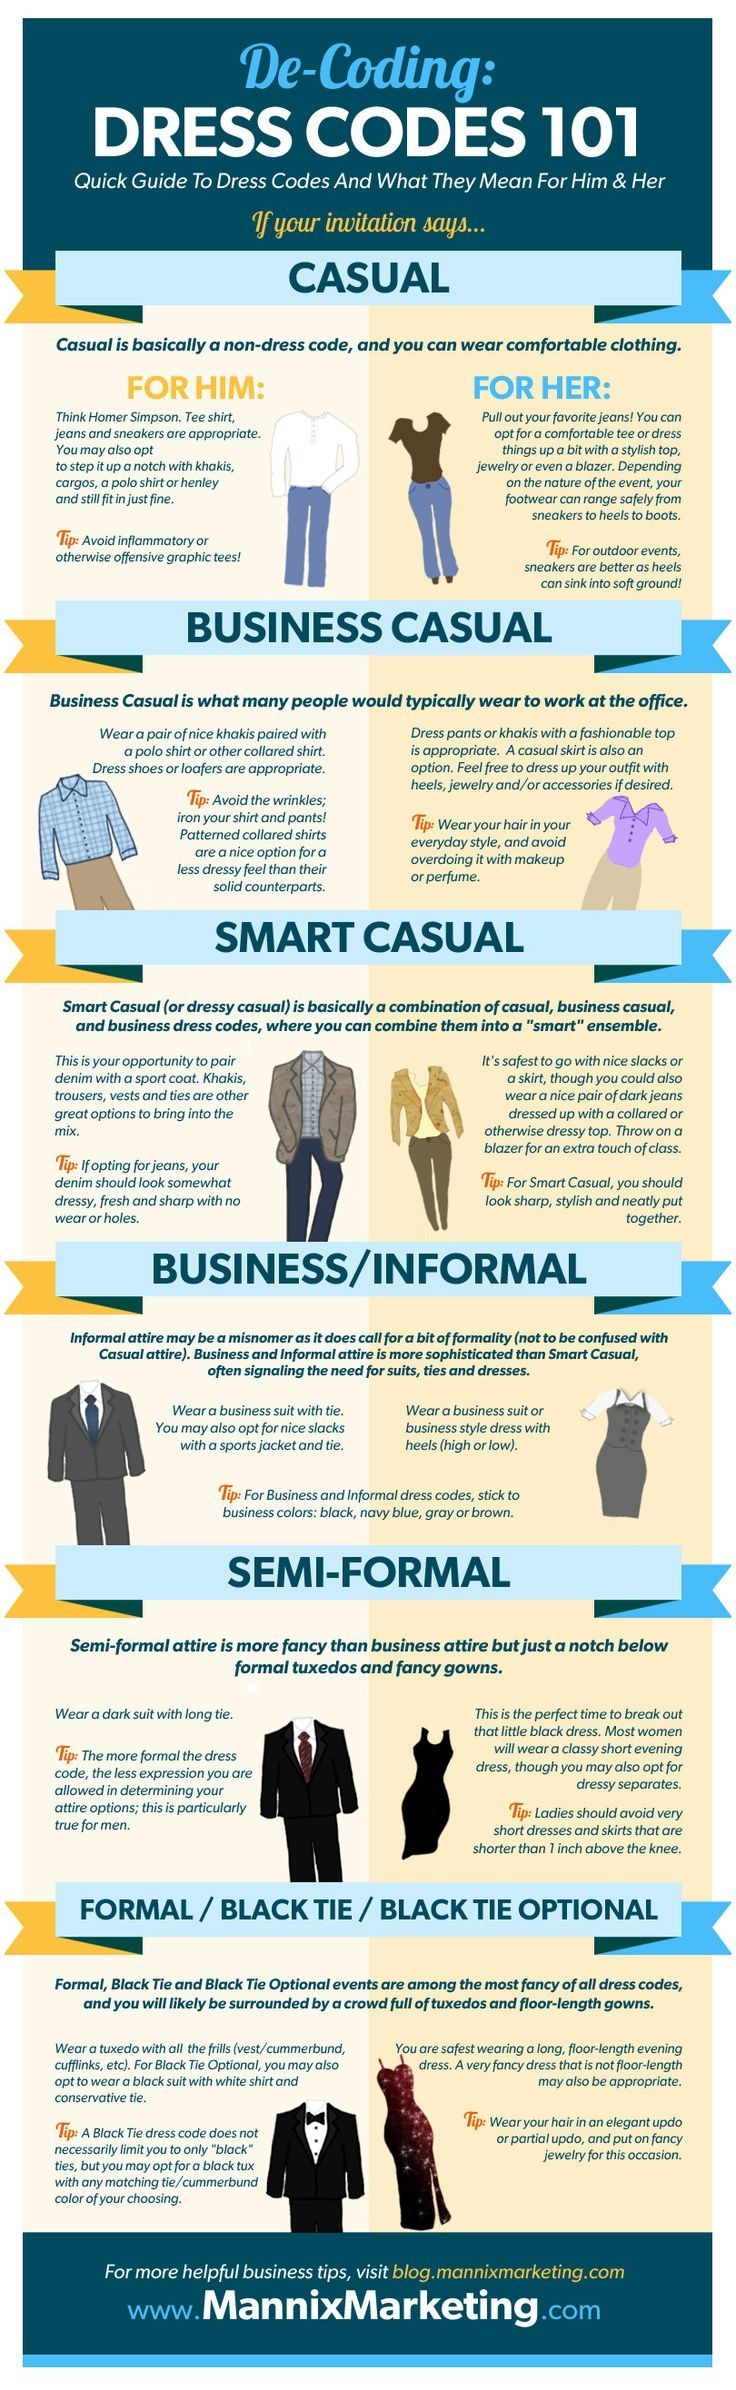 De-Coding Dress Codes 101: Quick Guide to Dress Codes & What They Mean for Him & Her INFOGRAPHIC